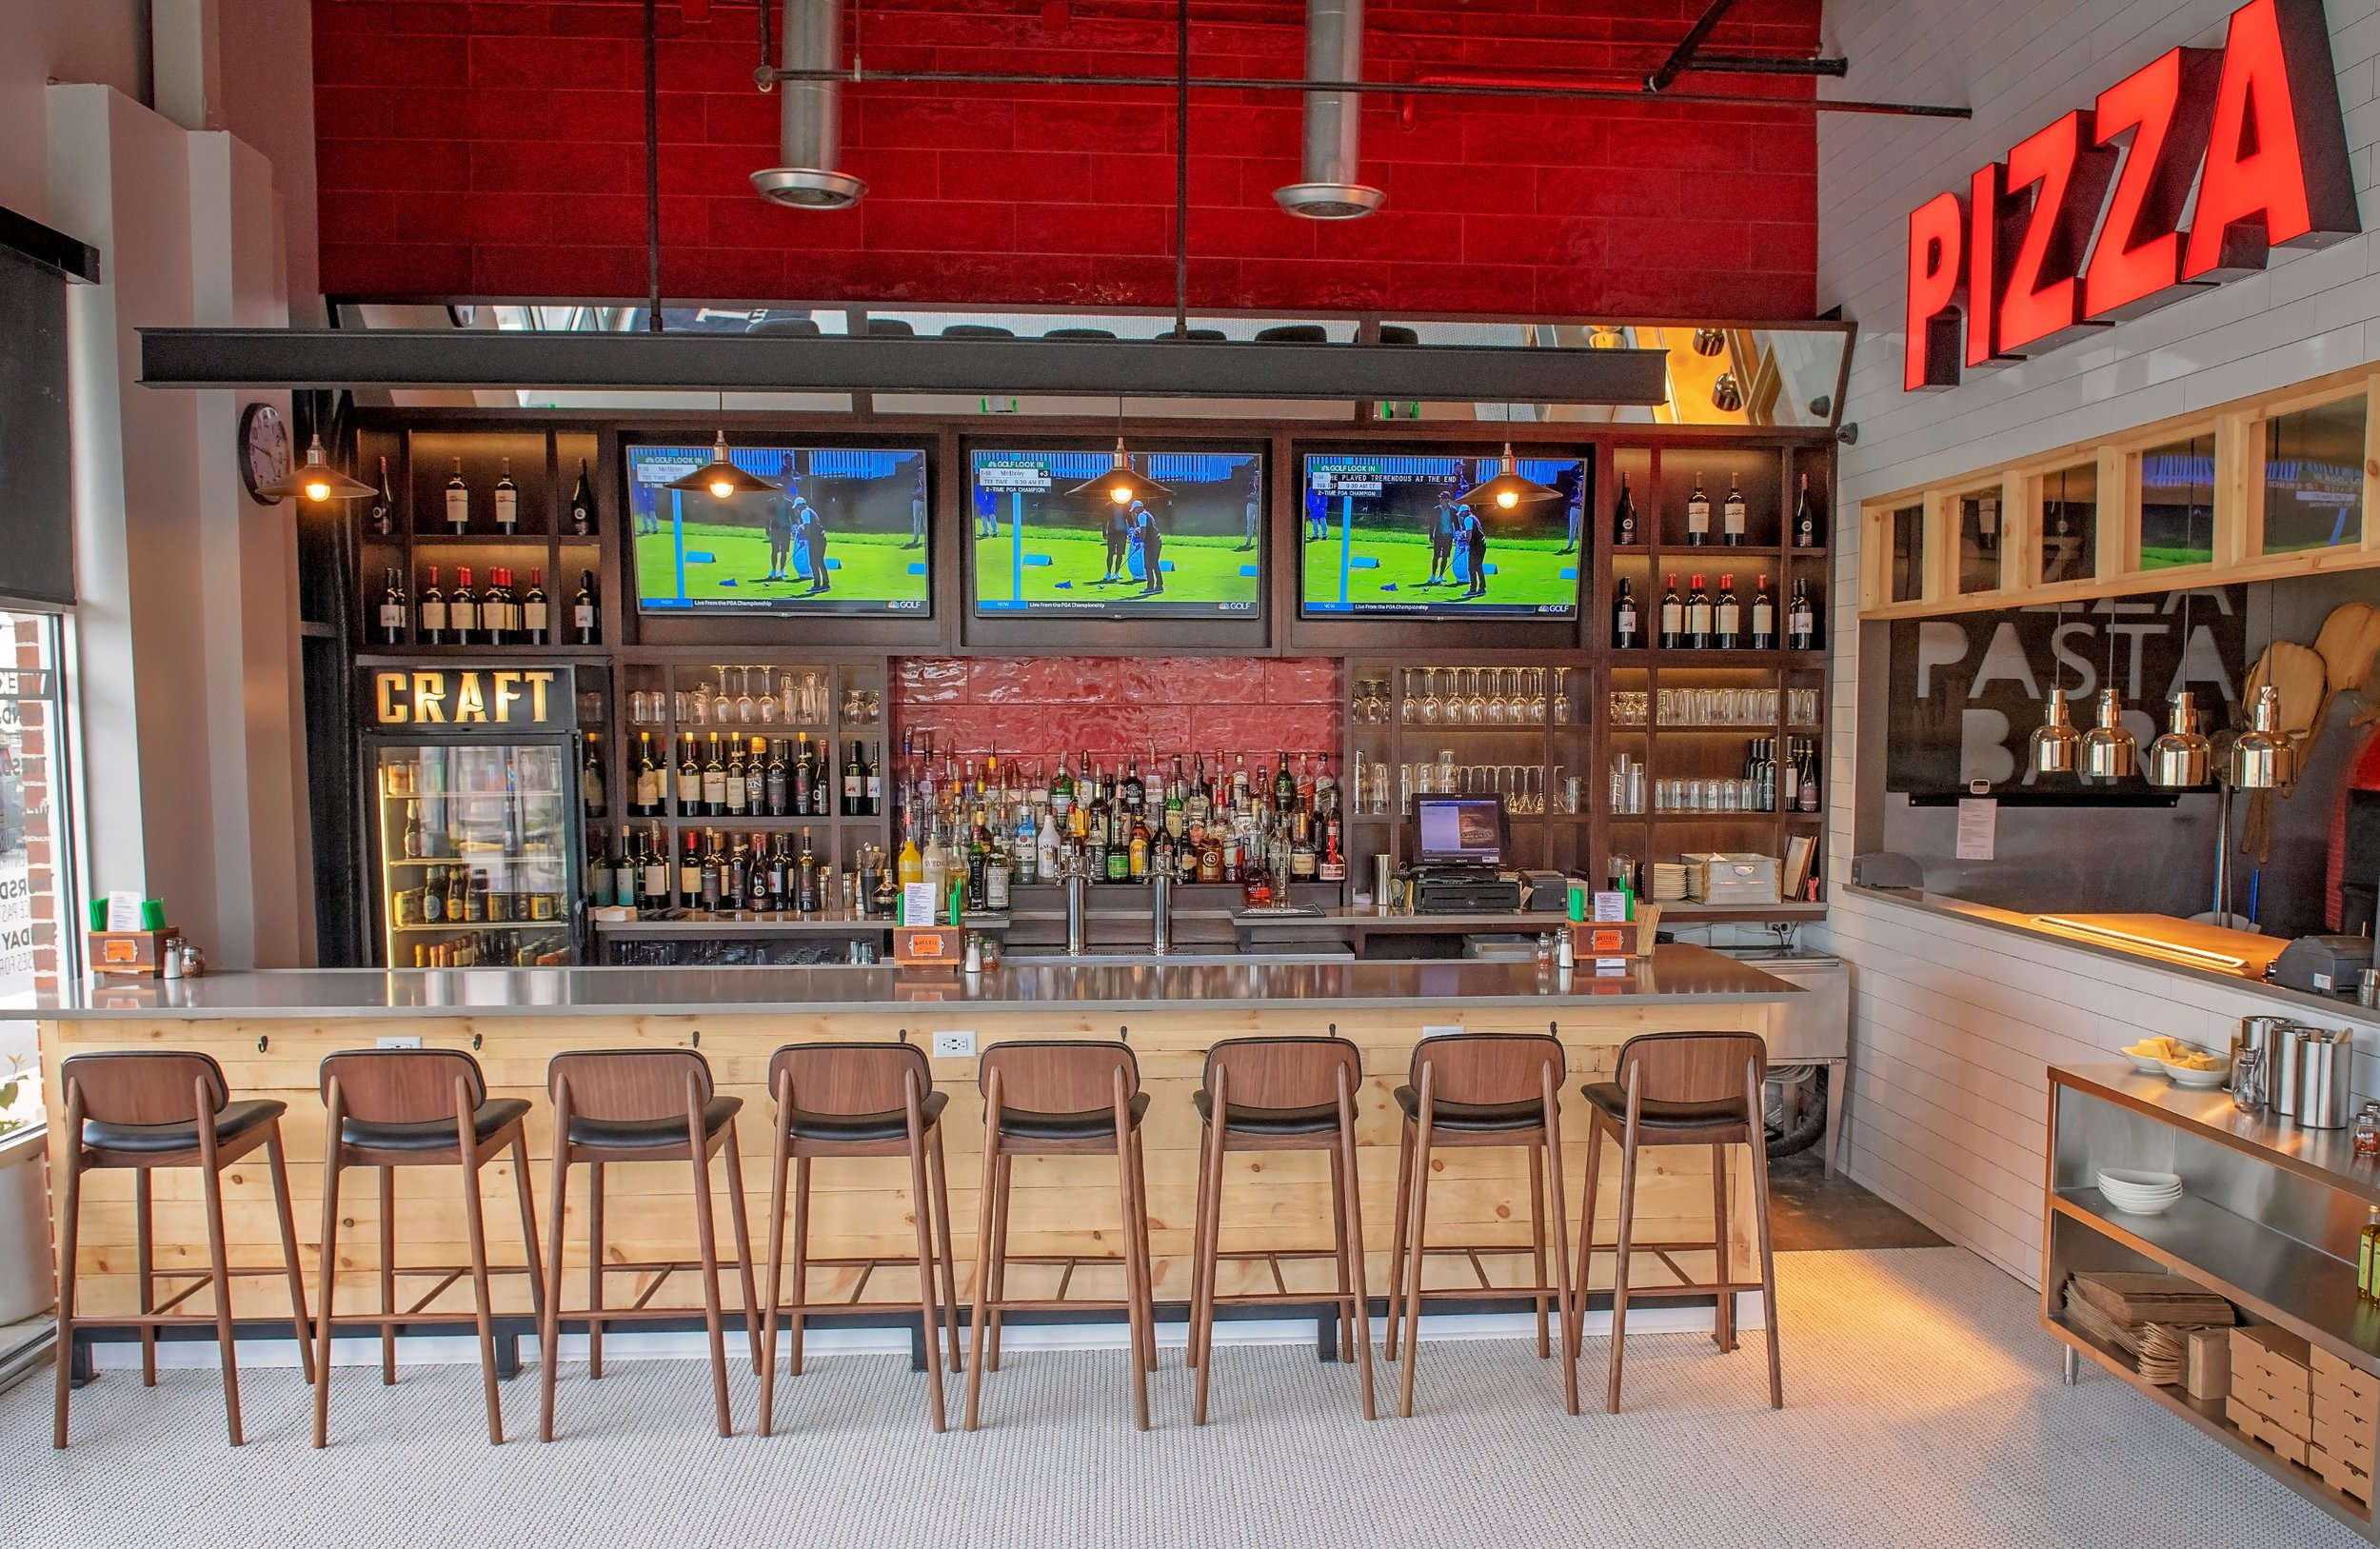 Crust & Craft in Rehoboth Beach recently underwent renovations that include new lighting, tables, artwork and tile. The bar area in Crust & Craft sports a new quartz countertop and barstools with leather seats. [PHOTO PROVIDED]